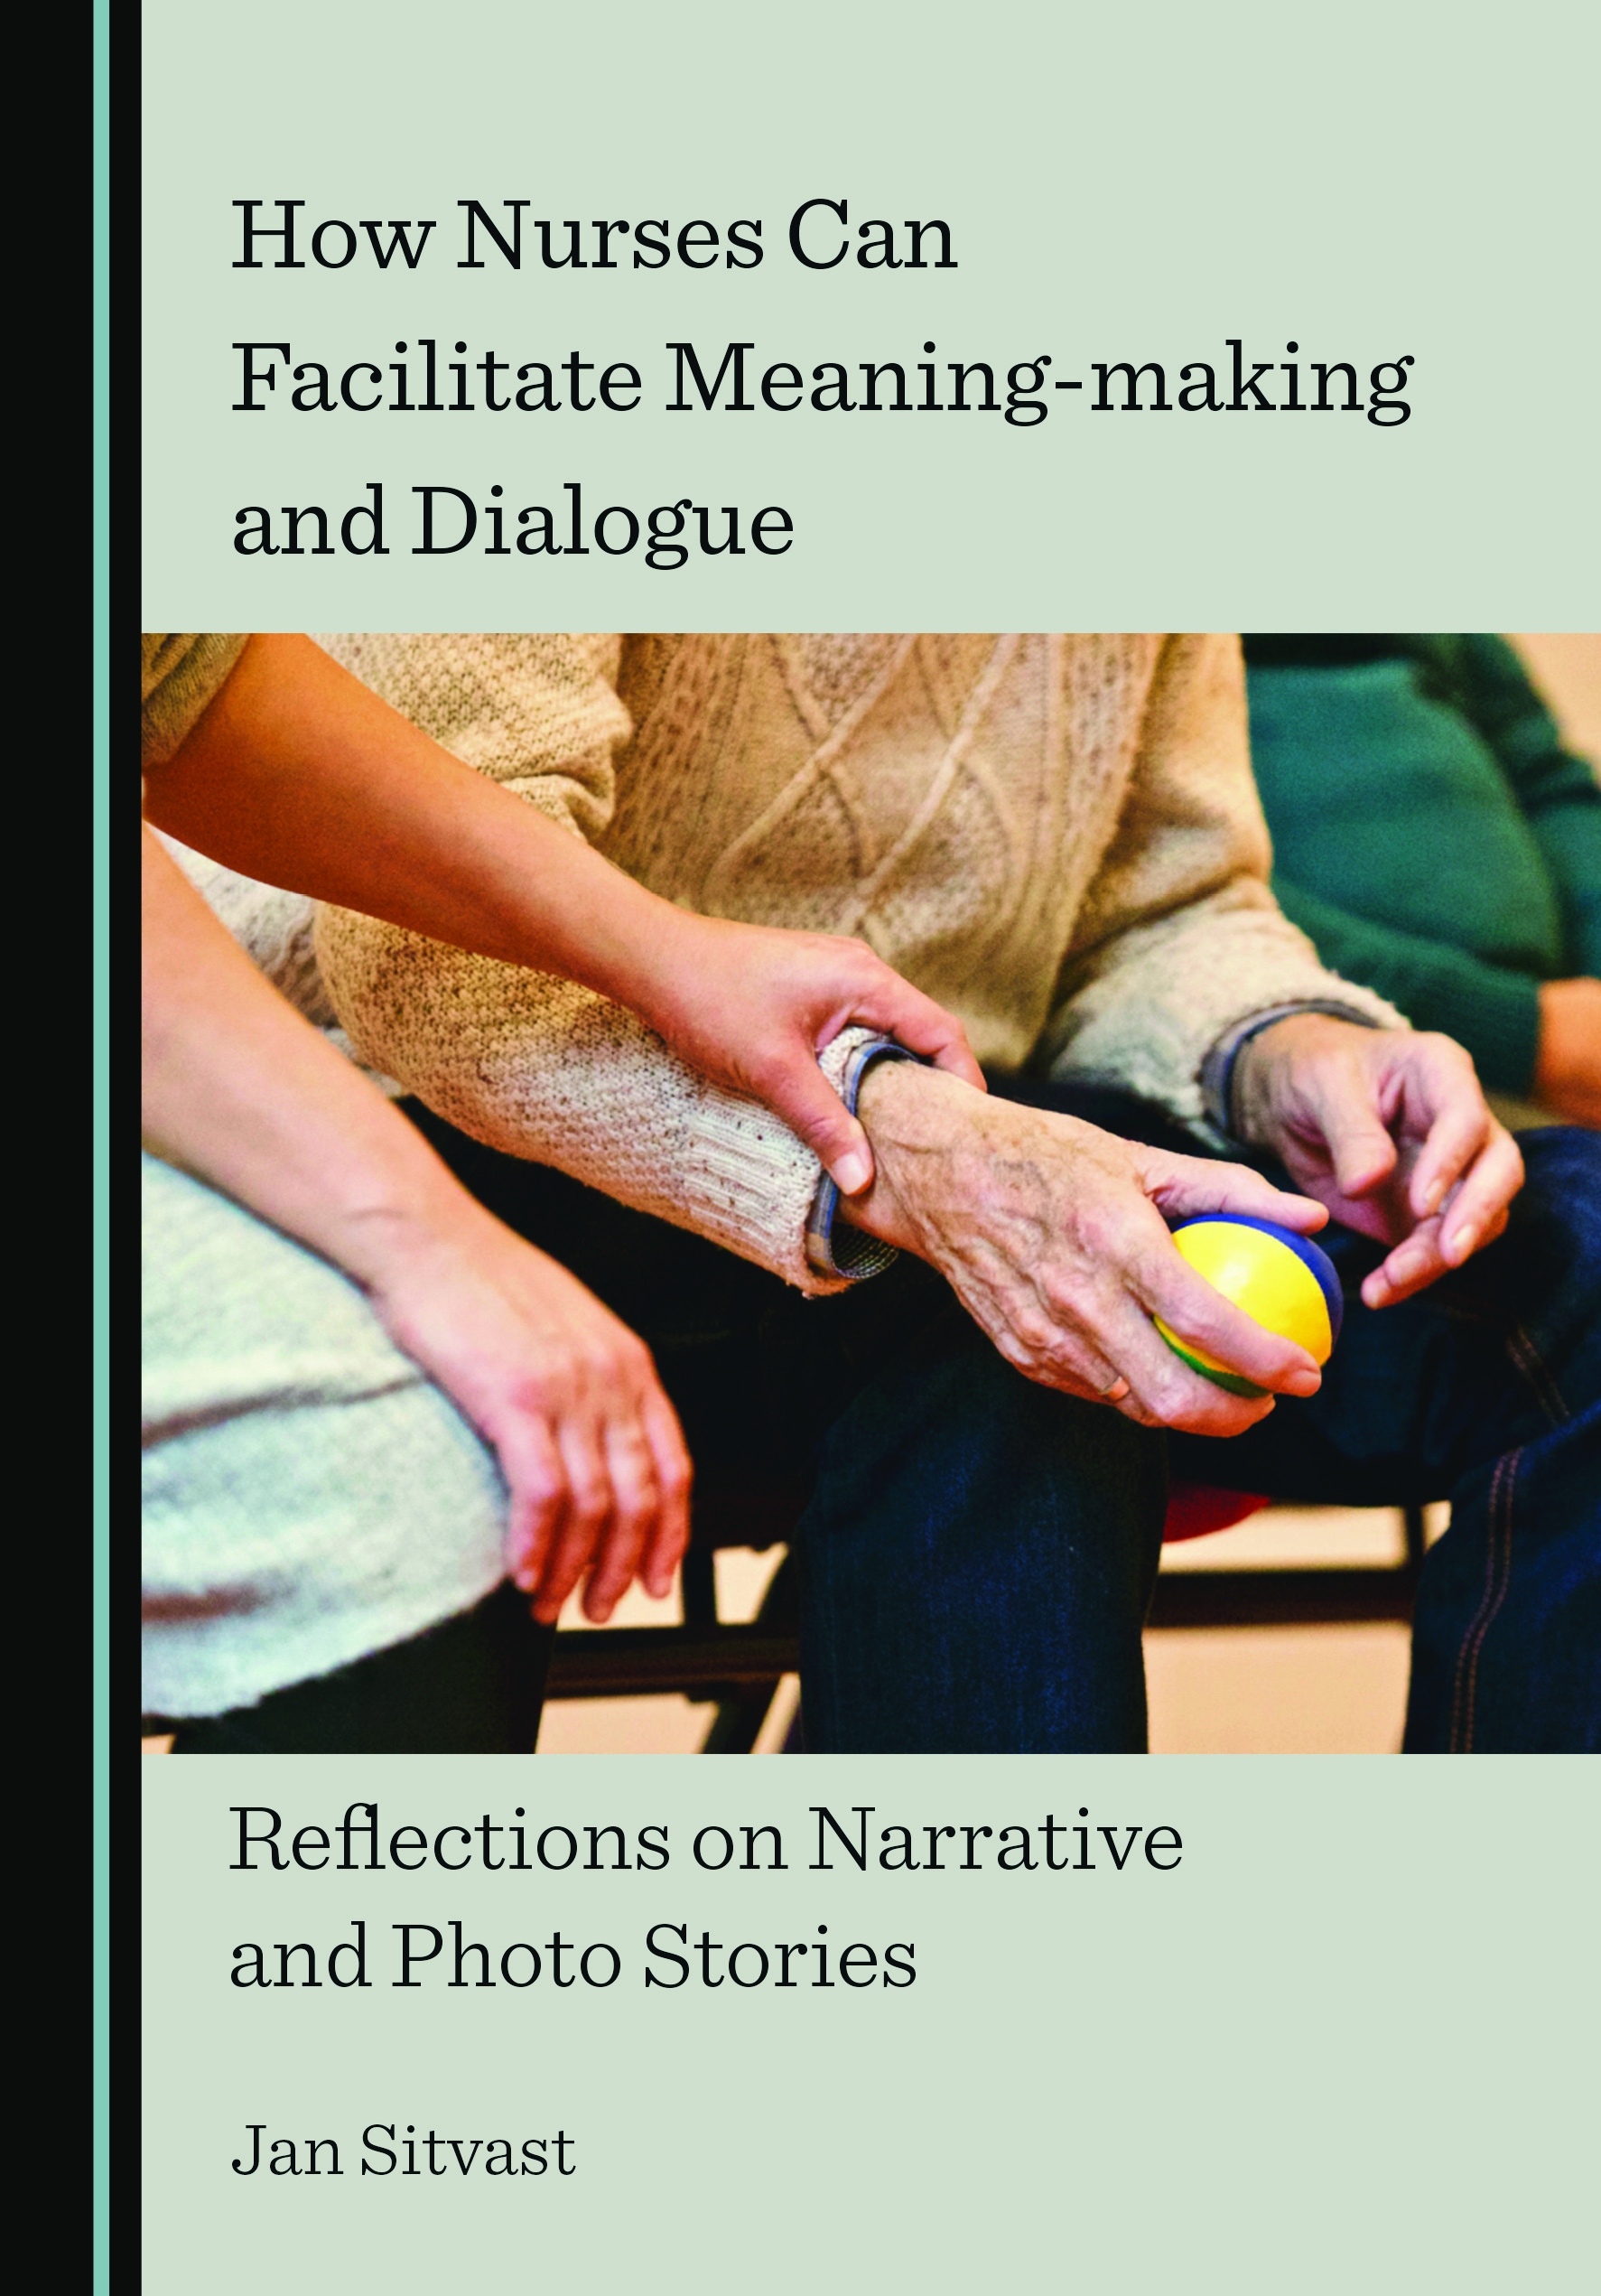 How Nurses Can Facilitate Meaning-making and Dialogue: Reflections on Narrative and Photo Stories